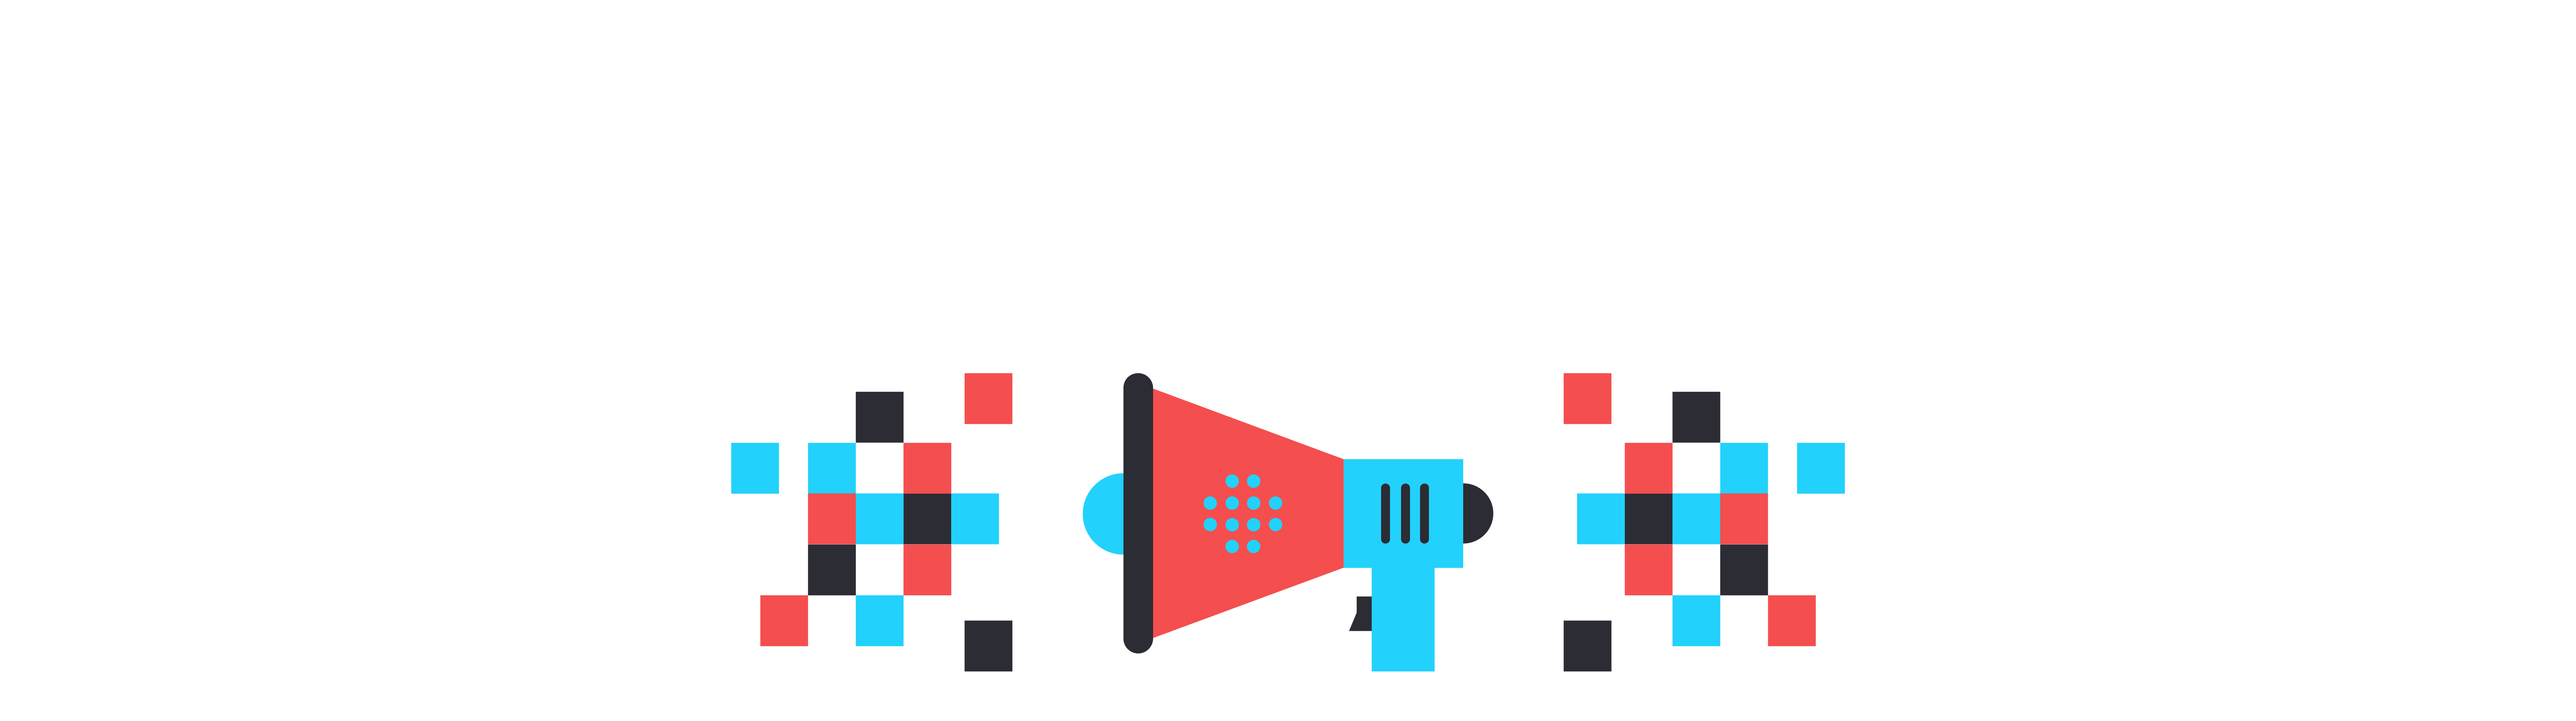 A graphic with abstract shapes and a megaphone